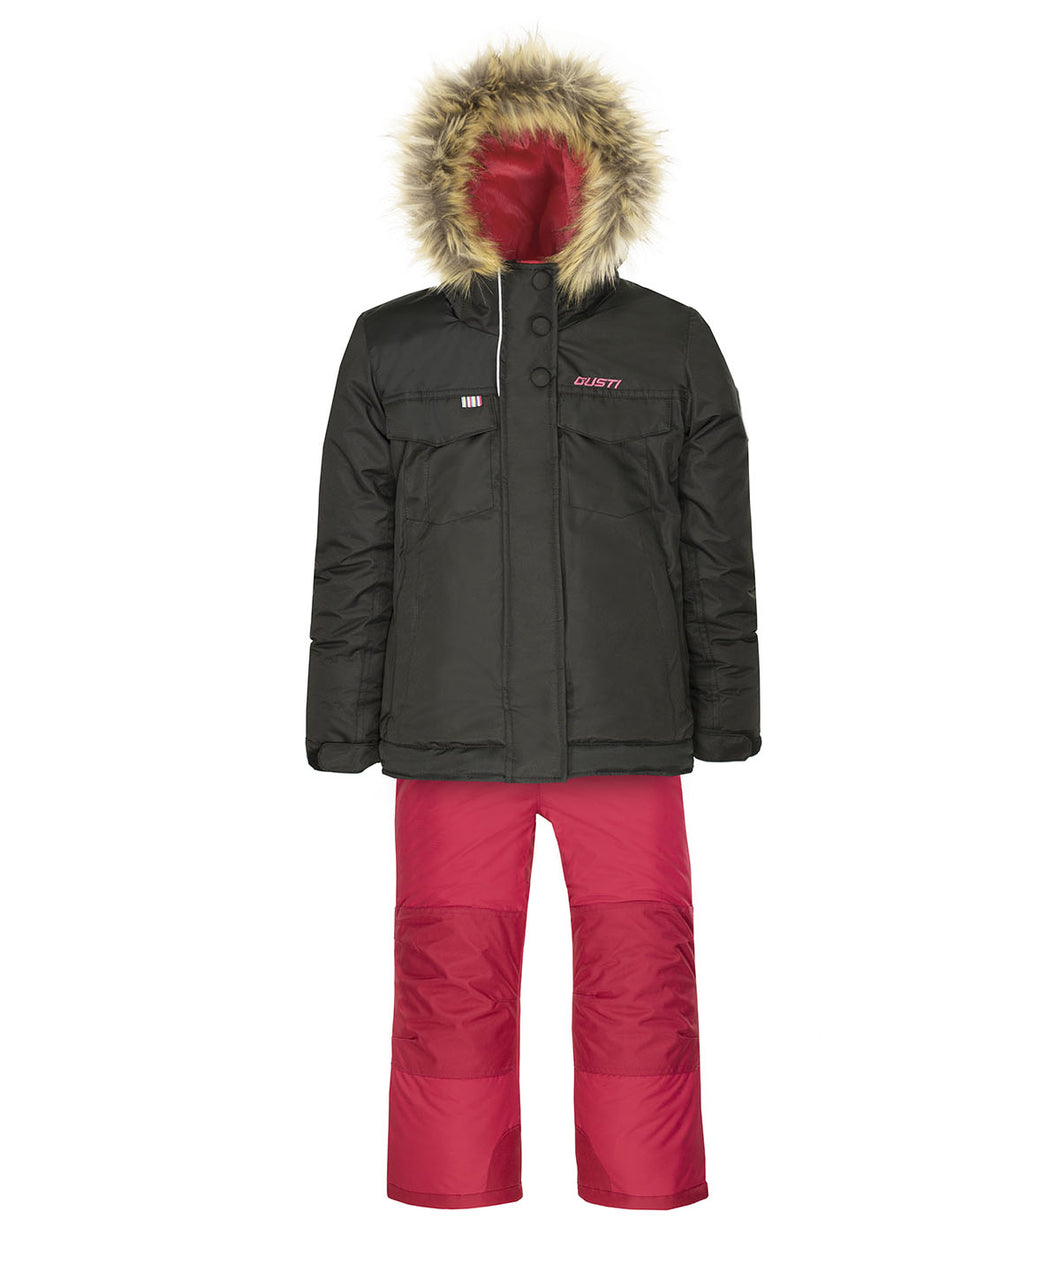 EVNA - Black - Girls Jacket and Snow Pant Set